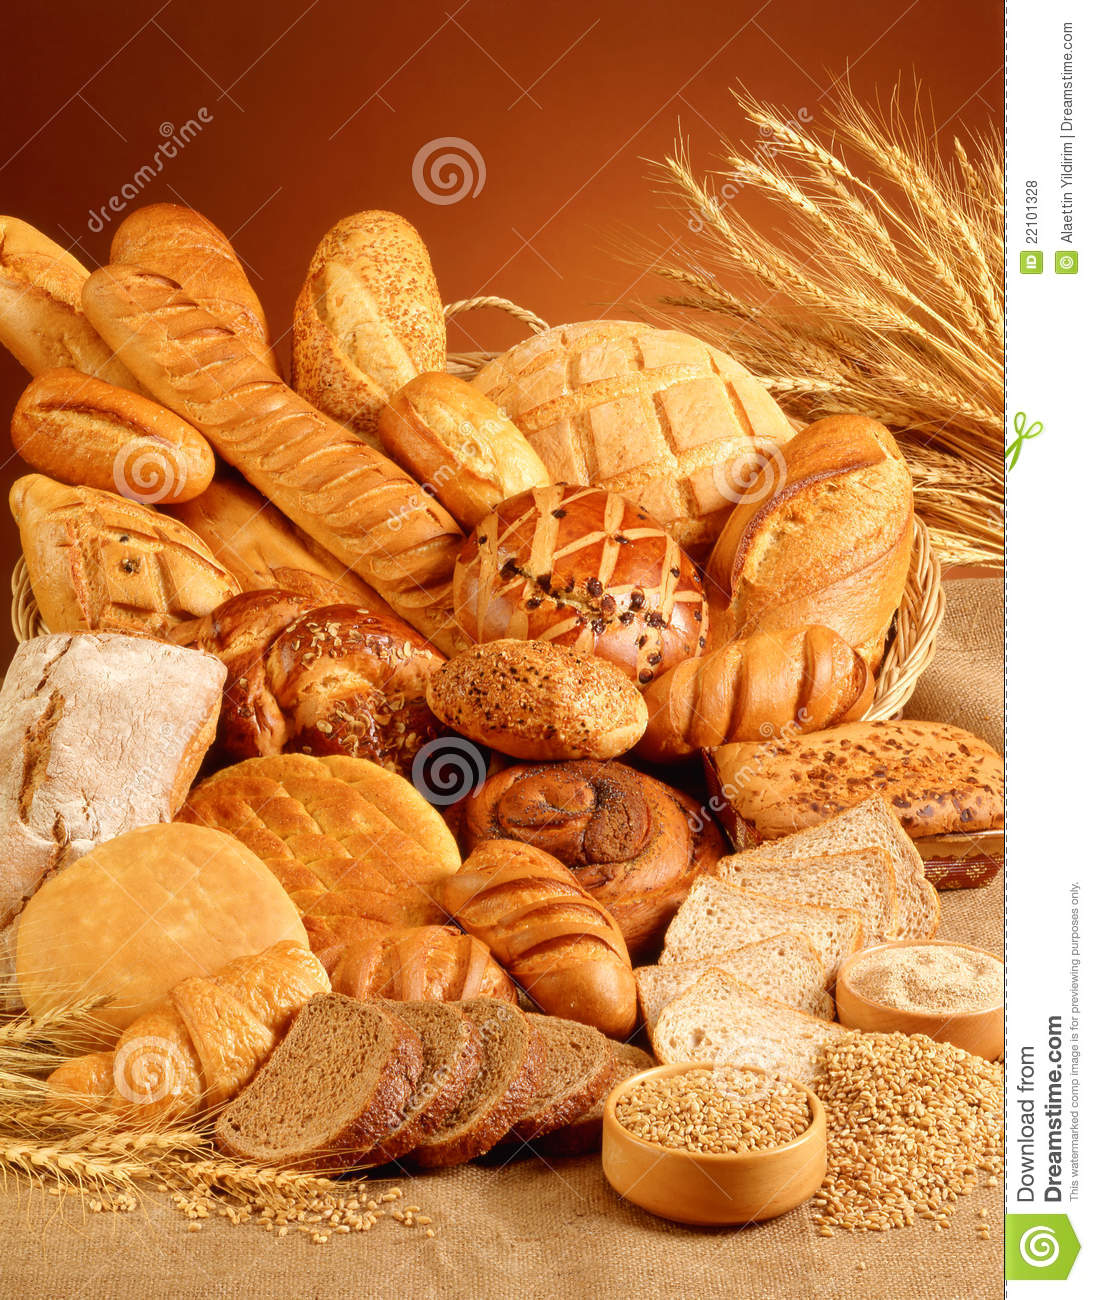 Bread Royalty Free Stock Photos Image 22101328